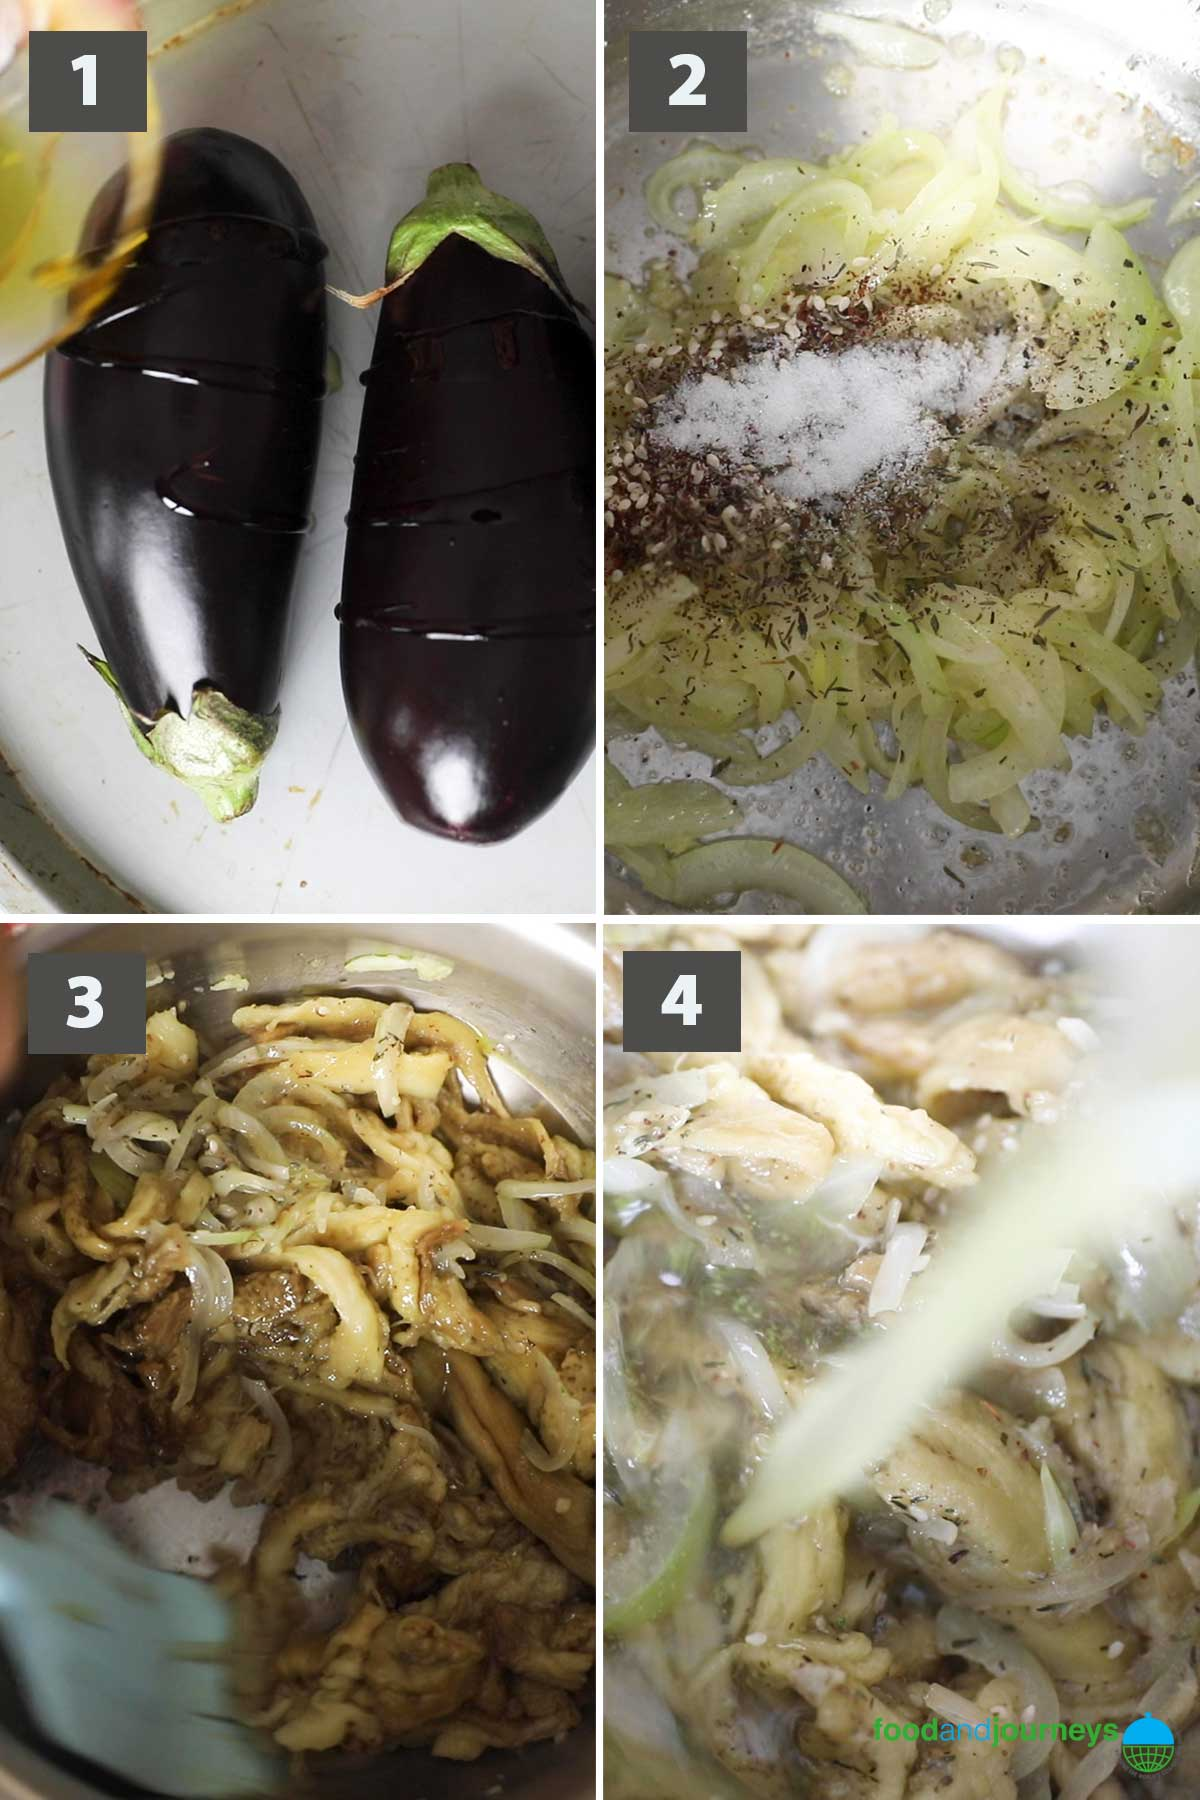 First part of a collage of images showing how to prepare Roasted Eggplant Soup at home.